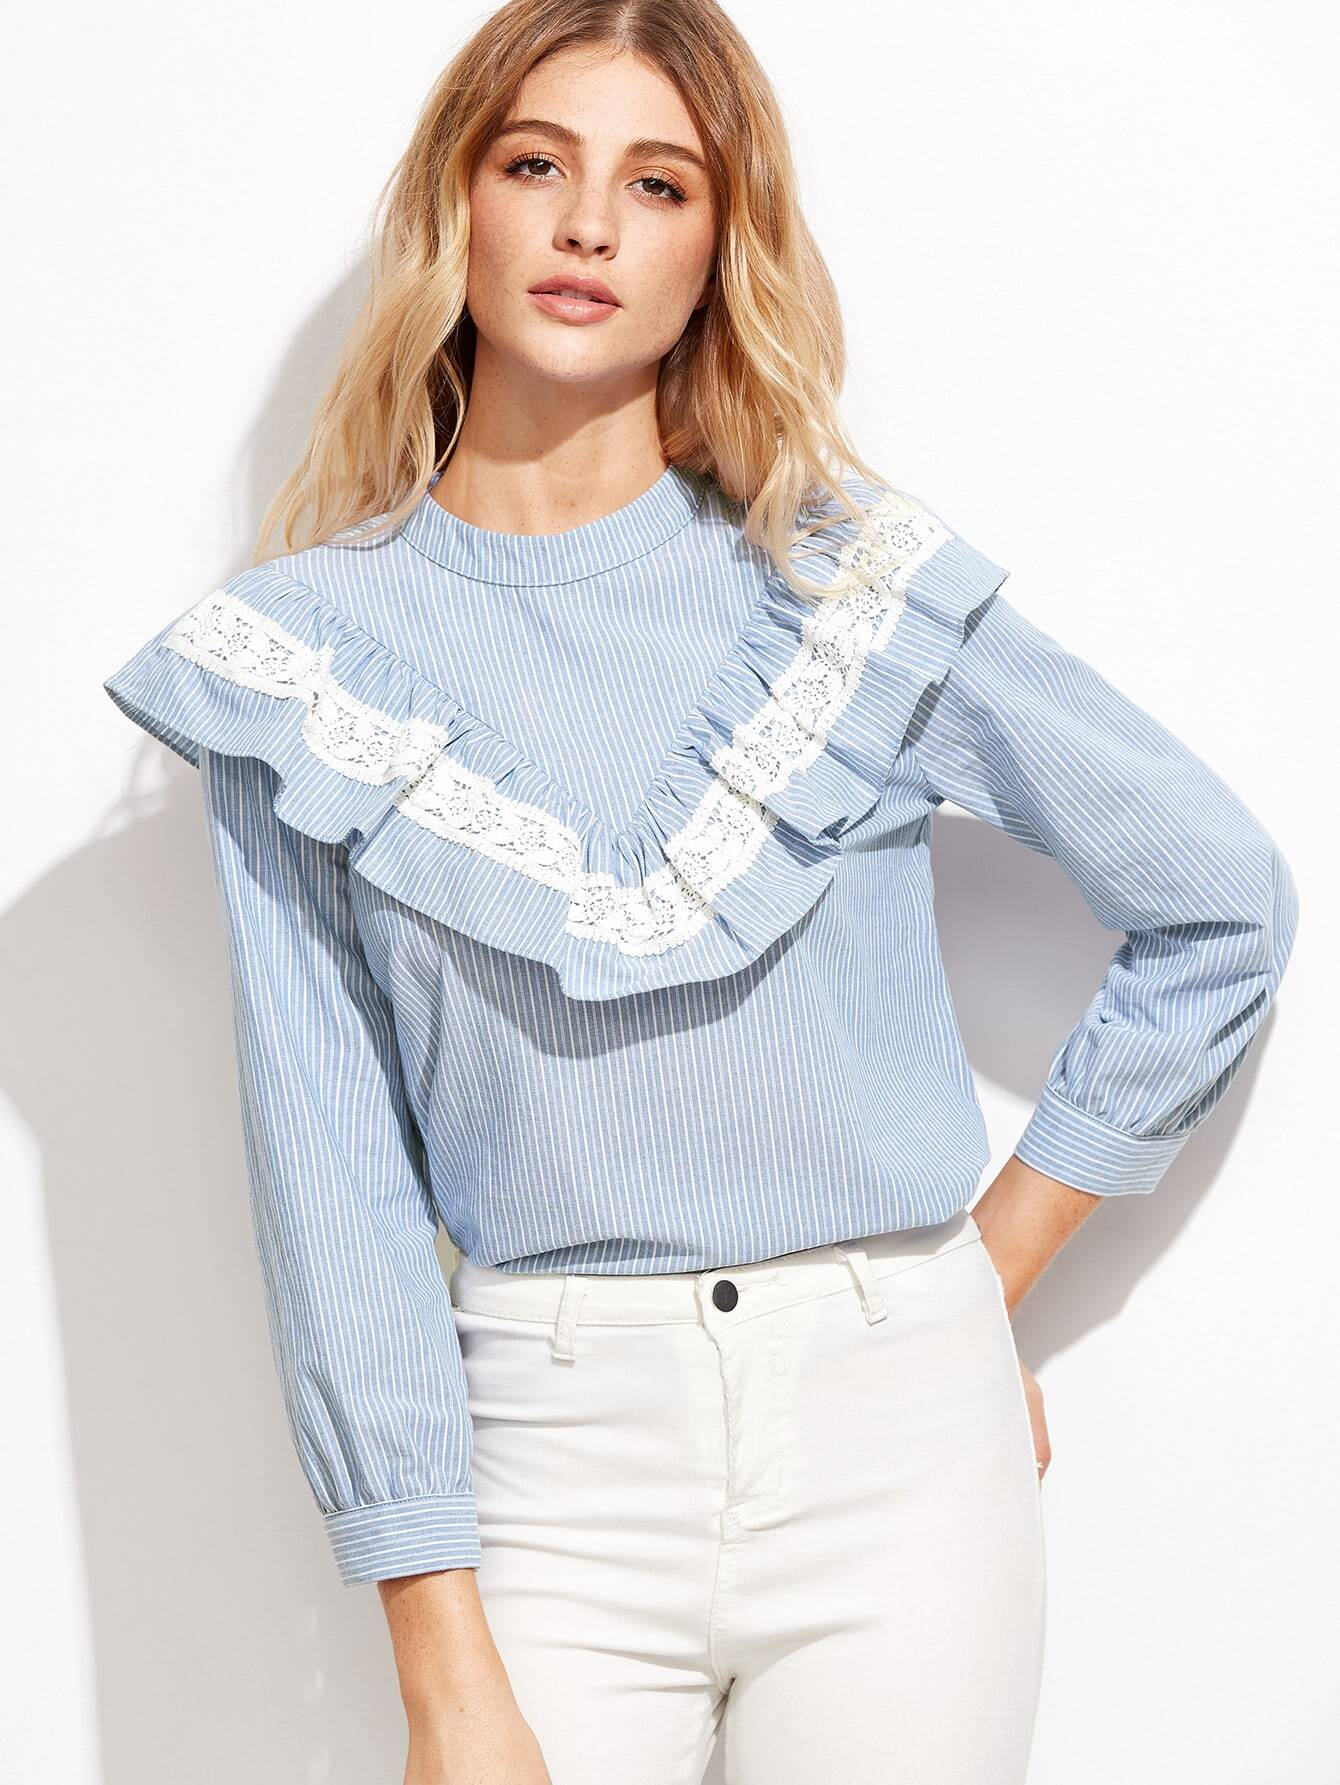 Lace and Ruffled Blouses